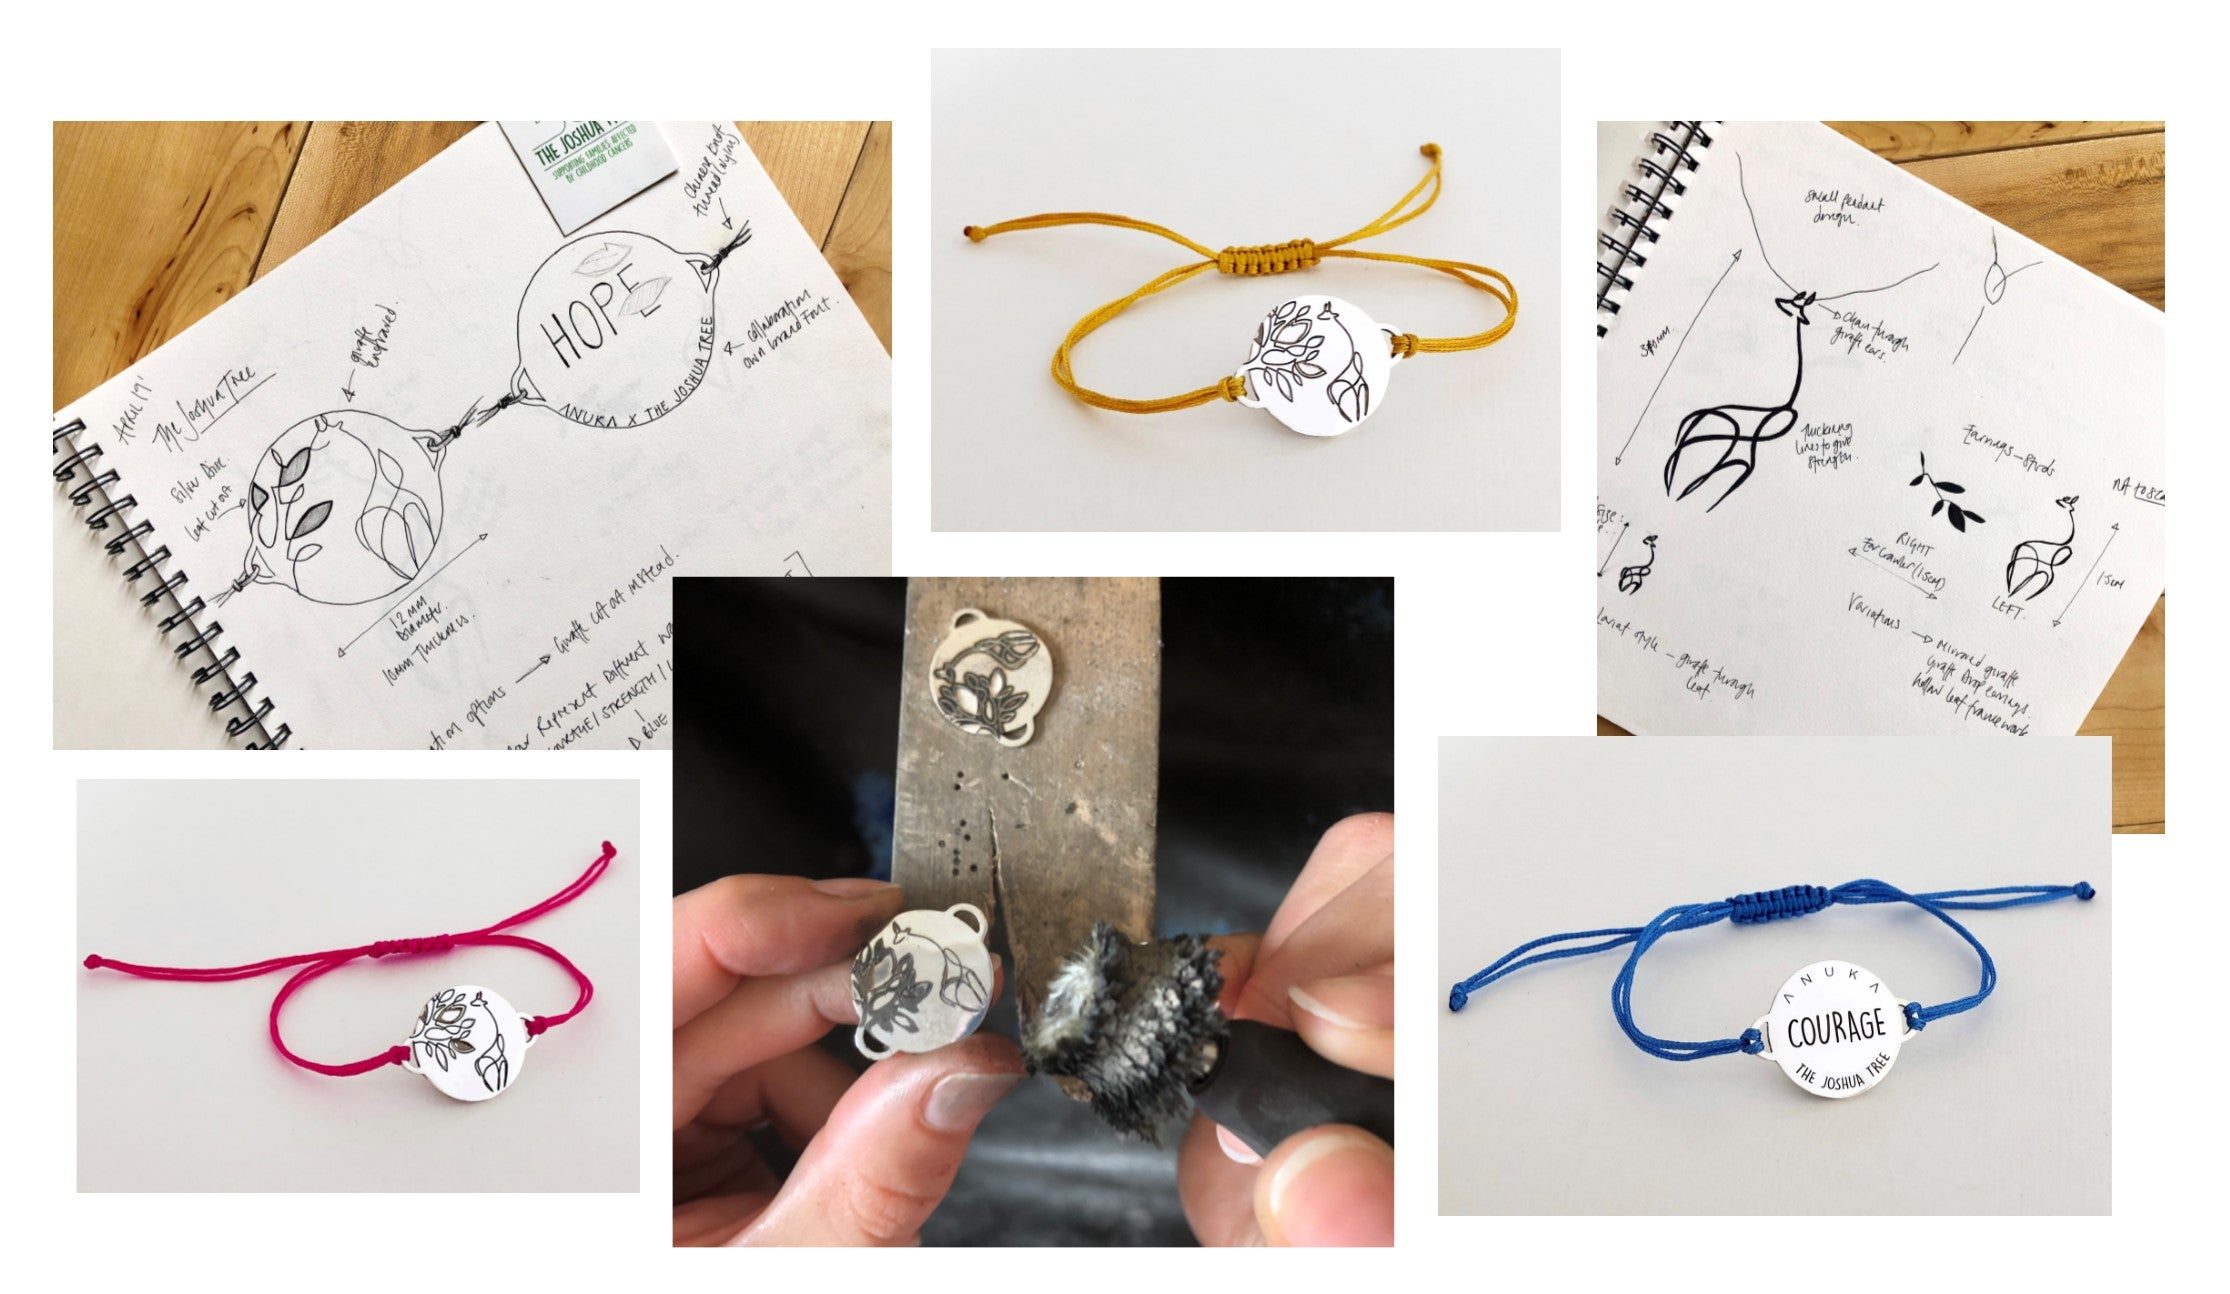 ETHICAL CHARITY BRACELETS